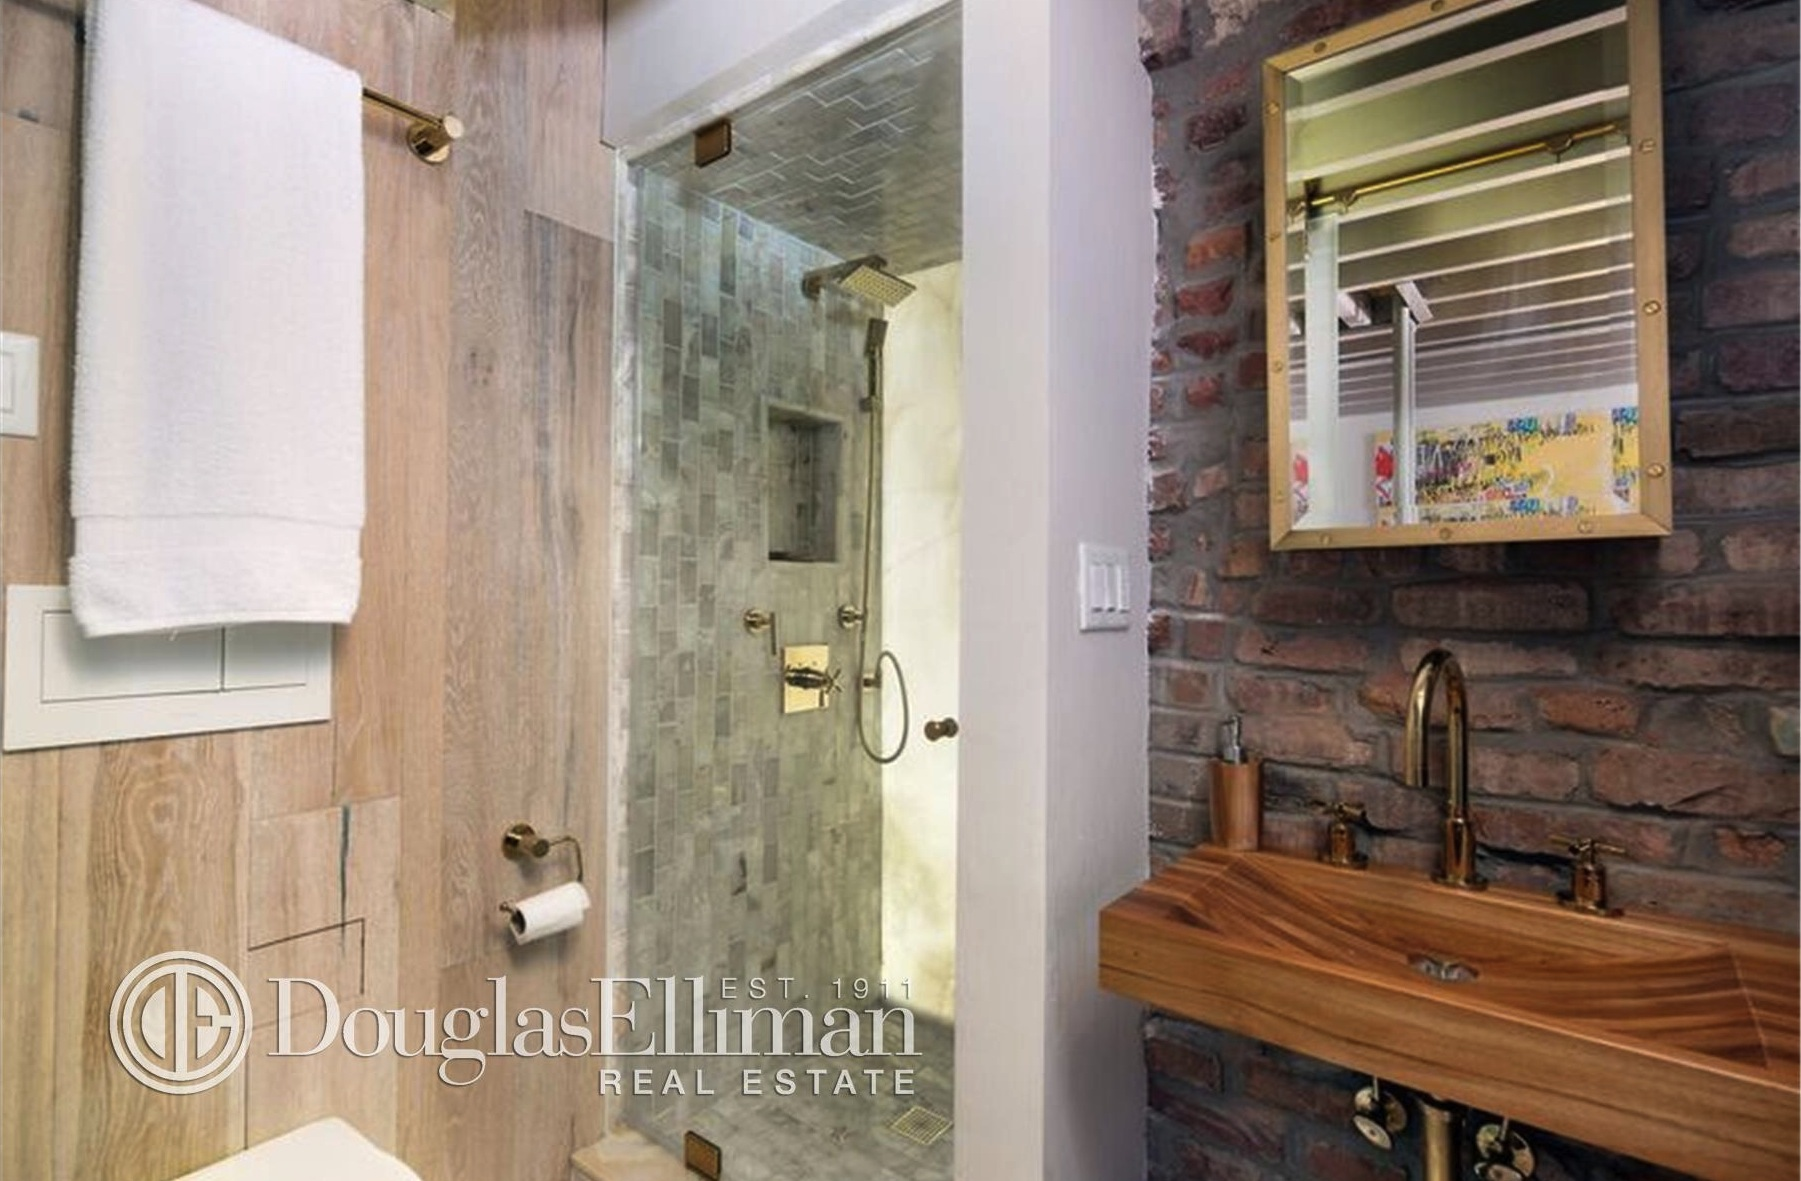 35 East 10th Street, loft, greenwich village, bathroom